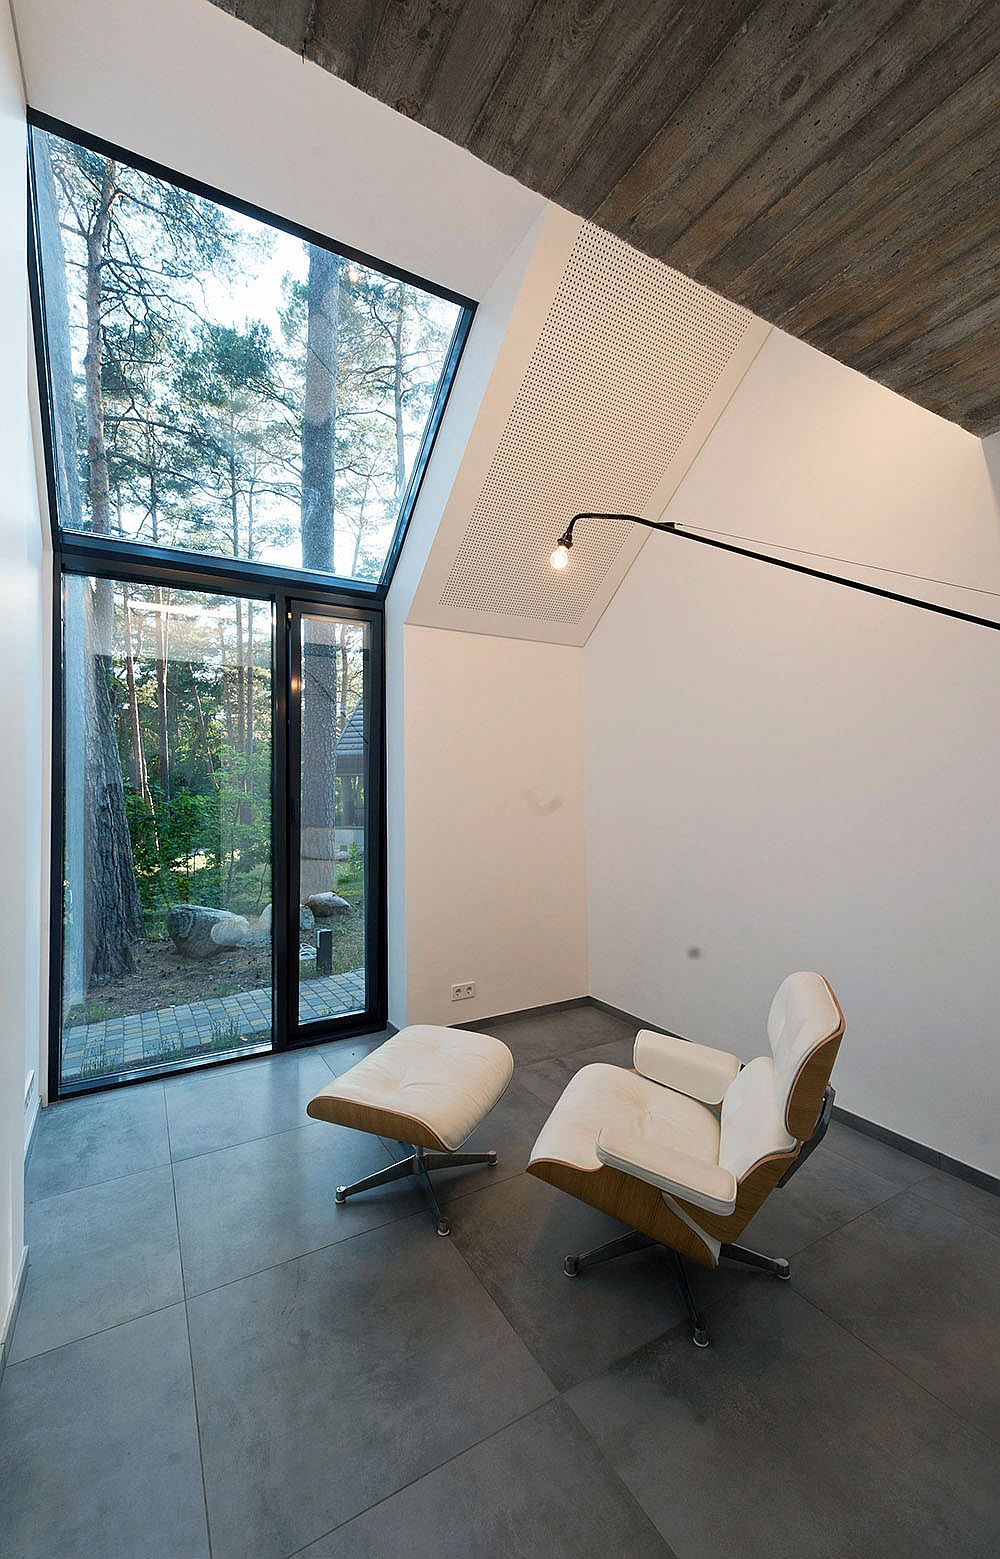 Iconic Eames Lounger sits inside the Black House Blues overlooking the forest